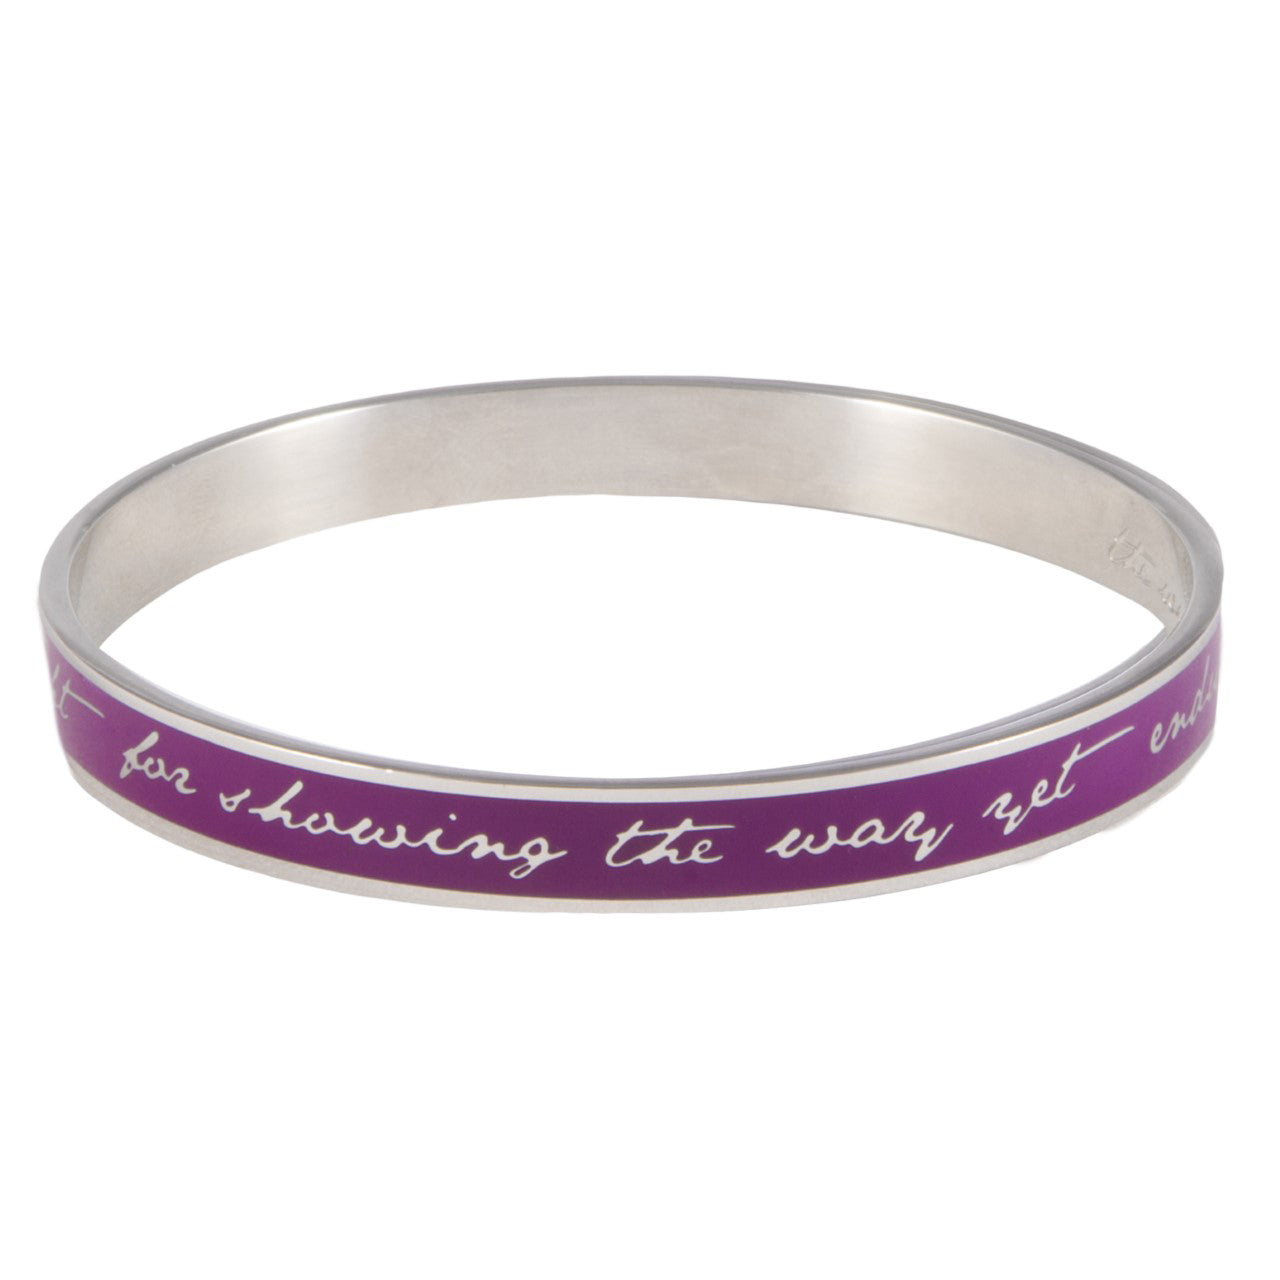 The Wishlet Bracelet - Dark Lilac